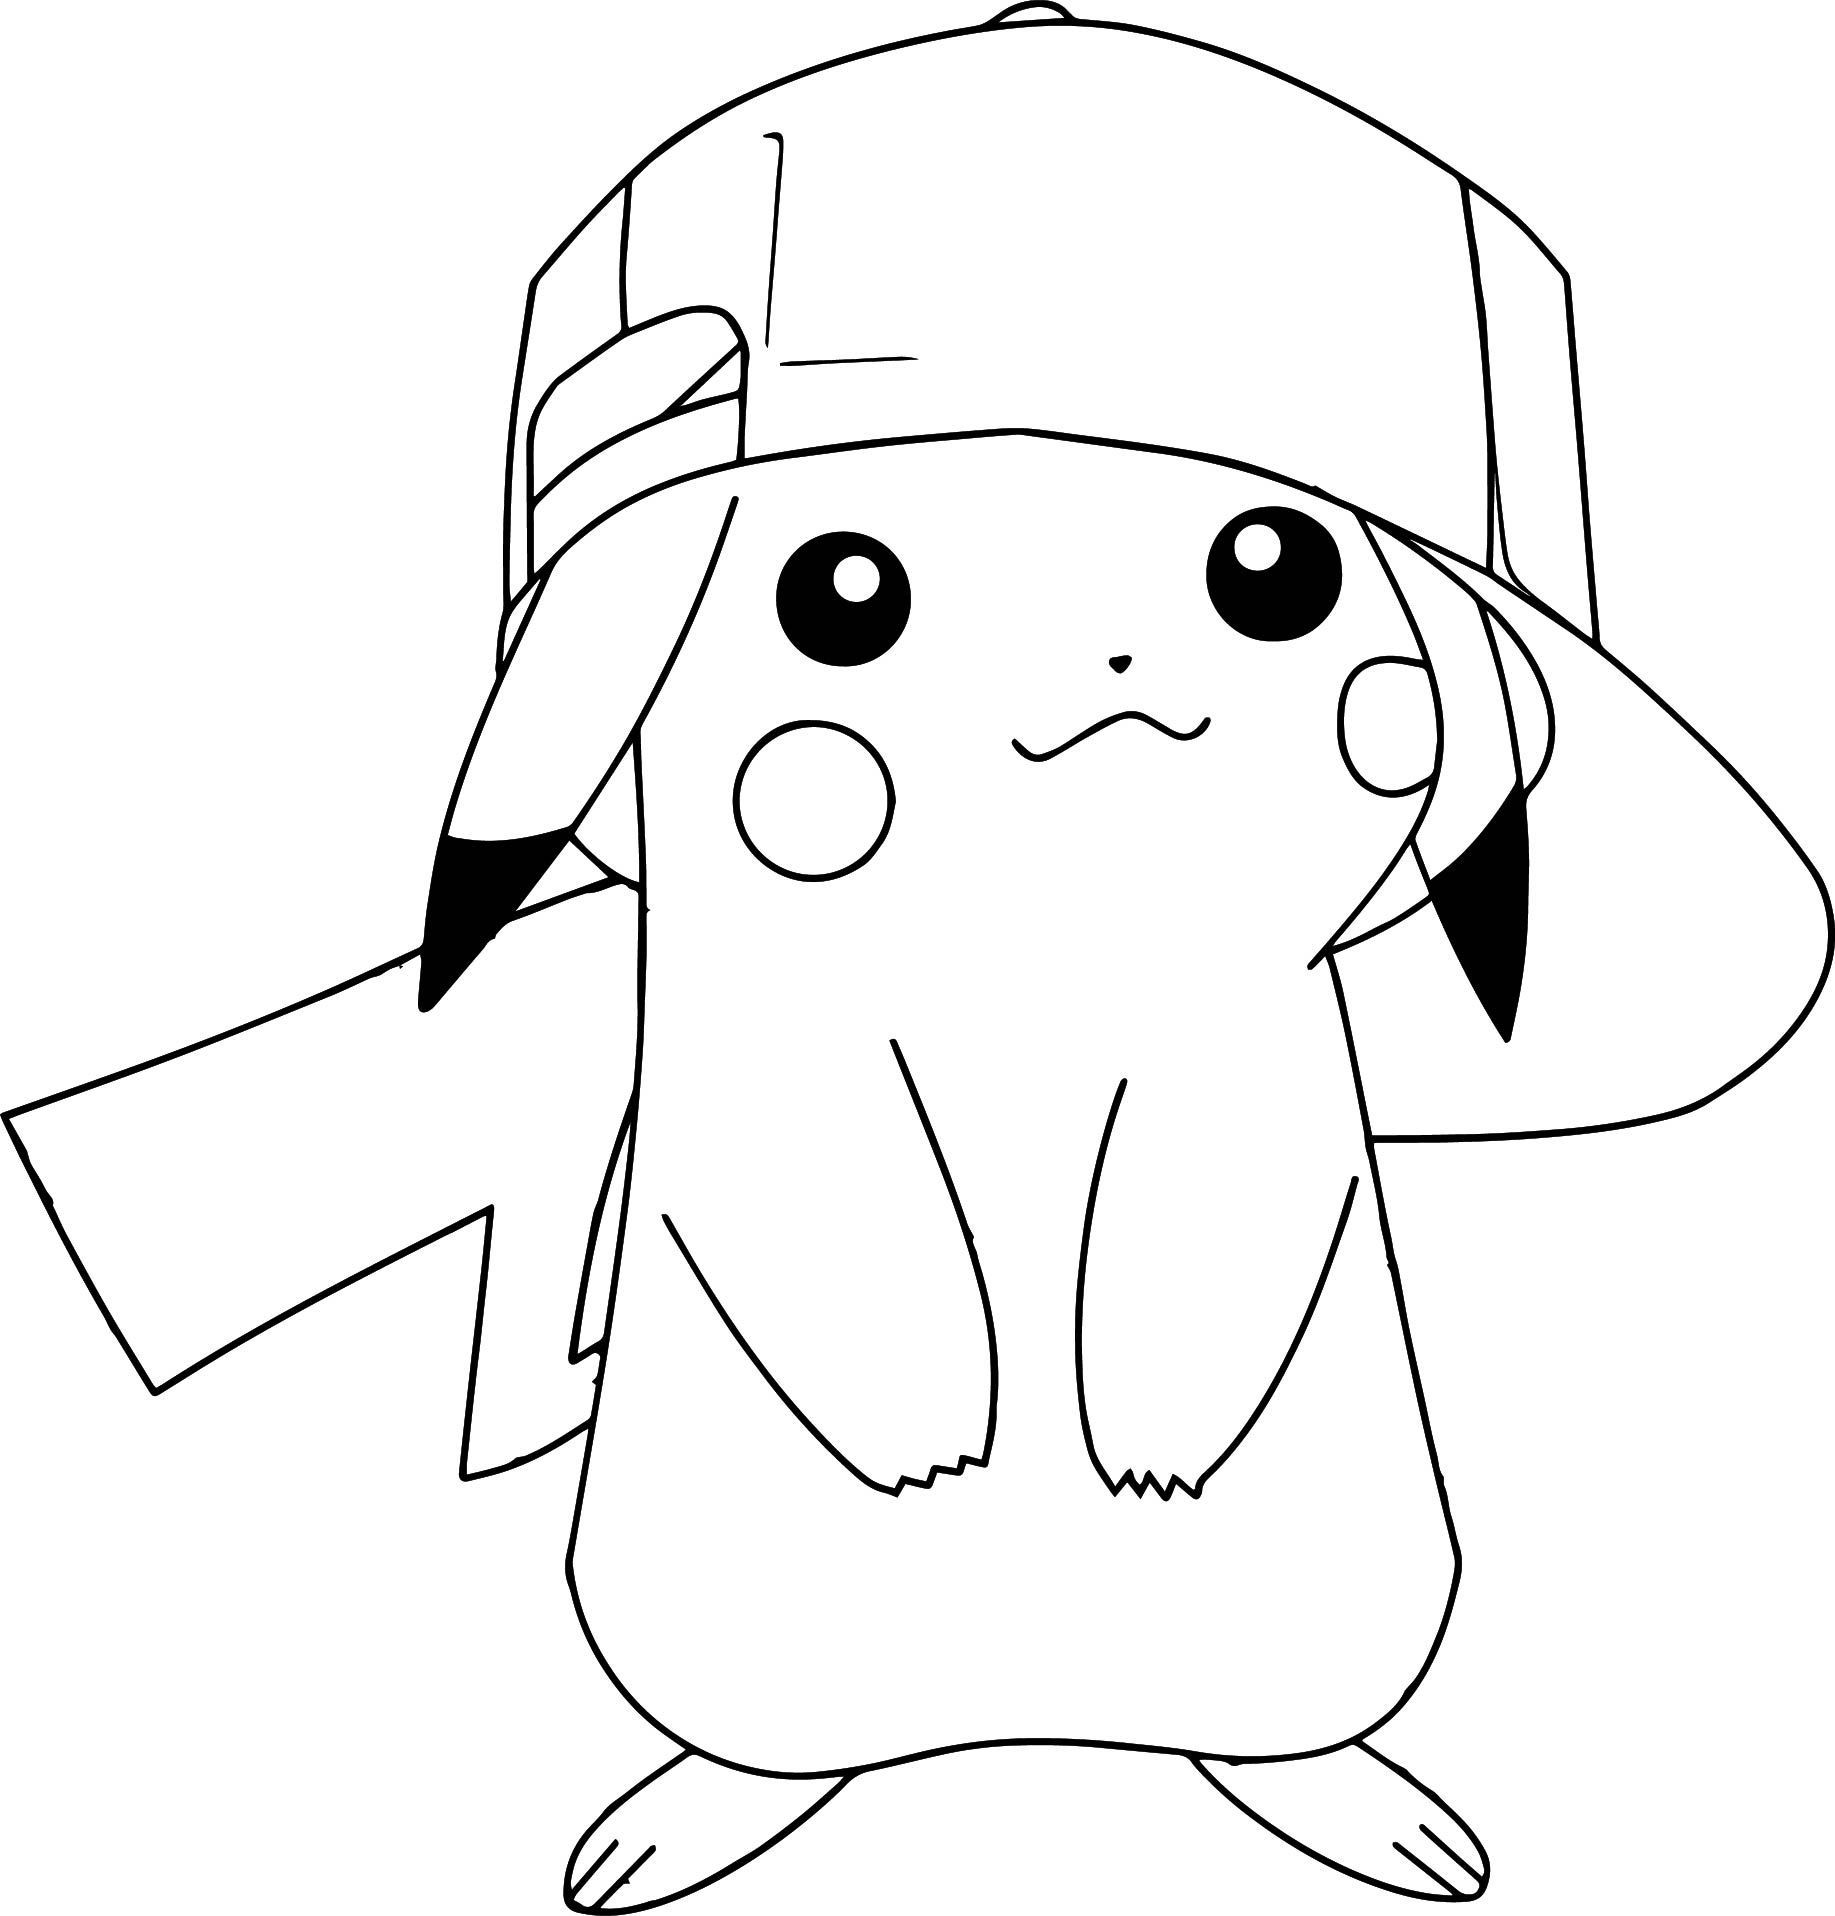 Eevee and pikachu coloring pages - Pokemon Coloring Pages Pikachu